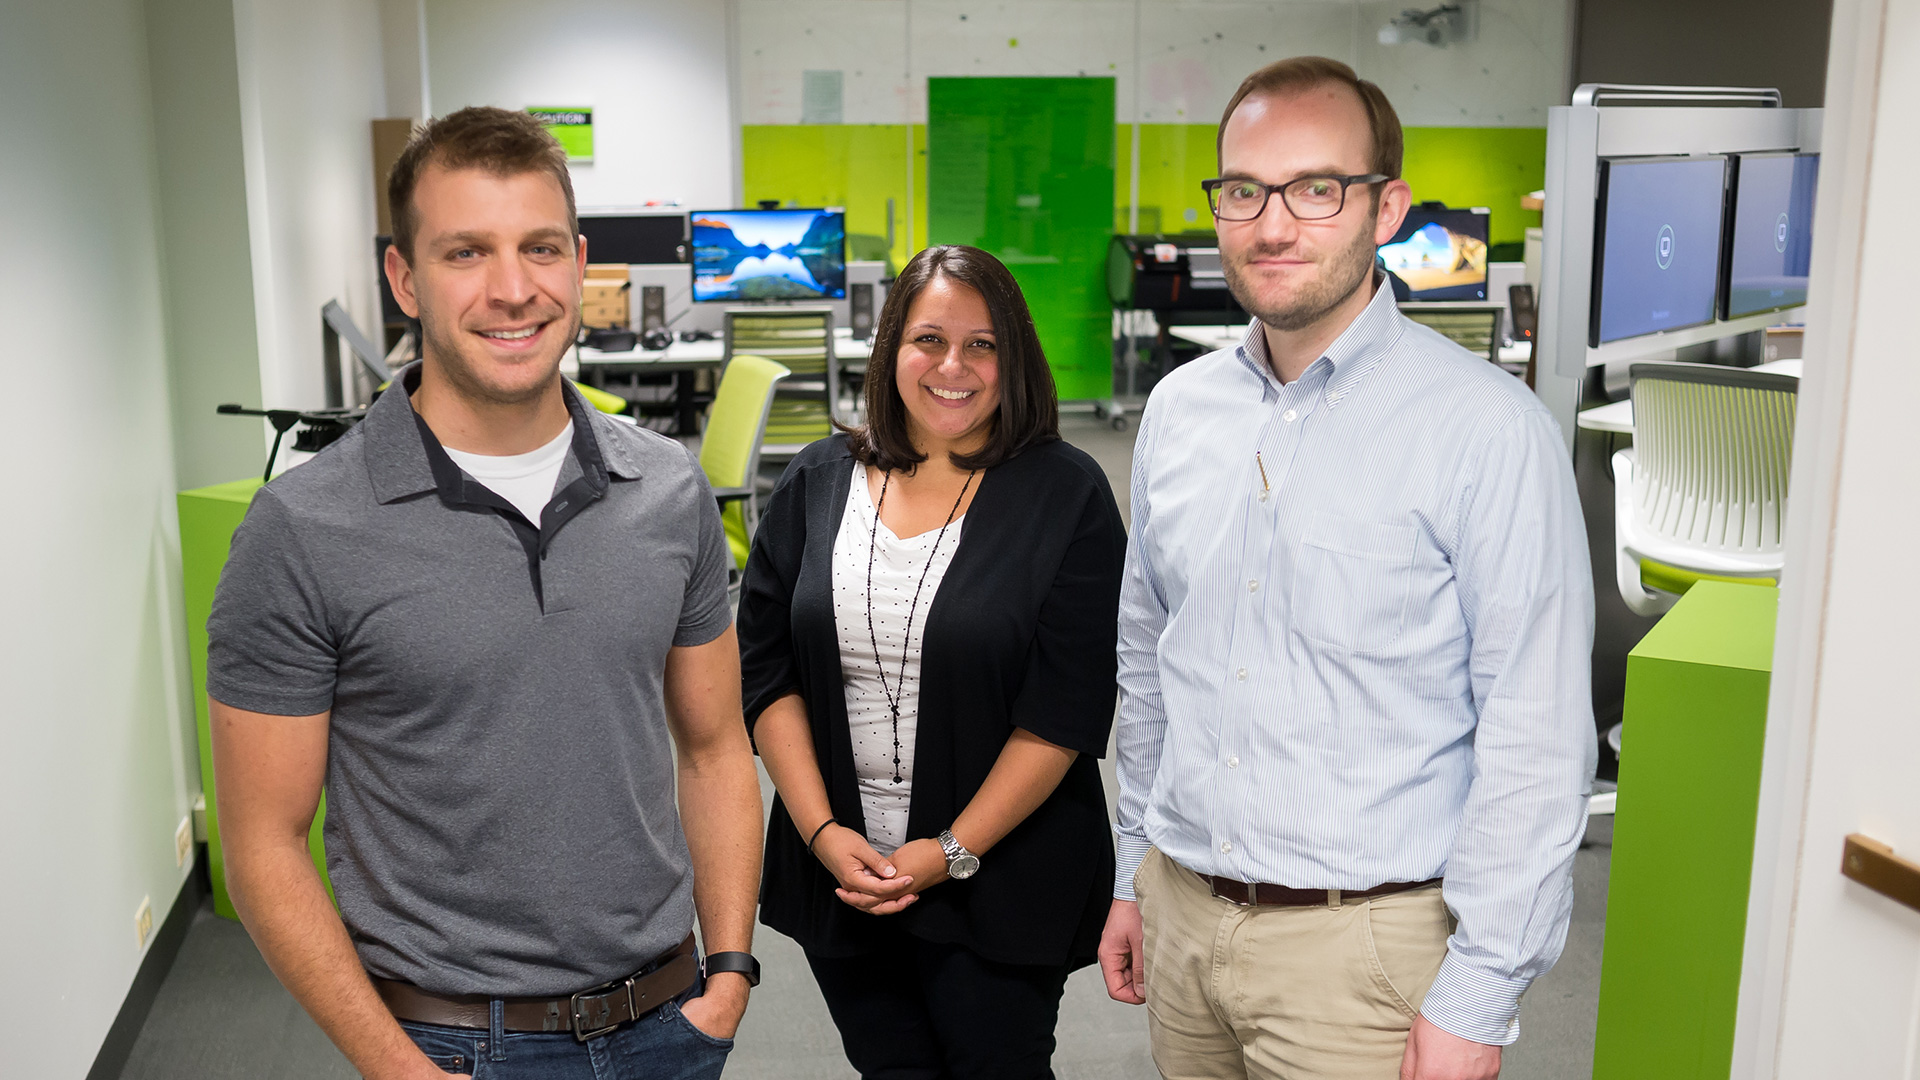 (From left) Scott Schlueter, Carmella Burdi and Tom Wall of the GRID-M team. Not pictured from the GRID-M team is Kyle Pfeiffer. (Image by Argonne National Laboratory.)